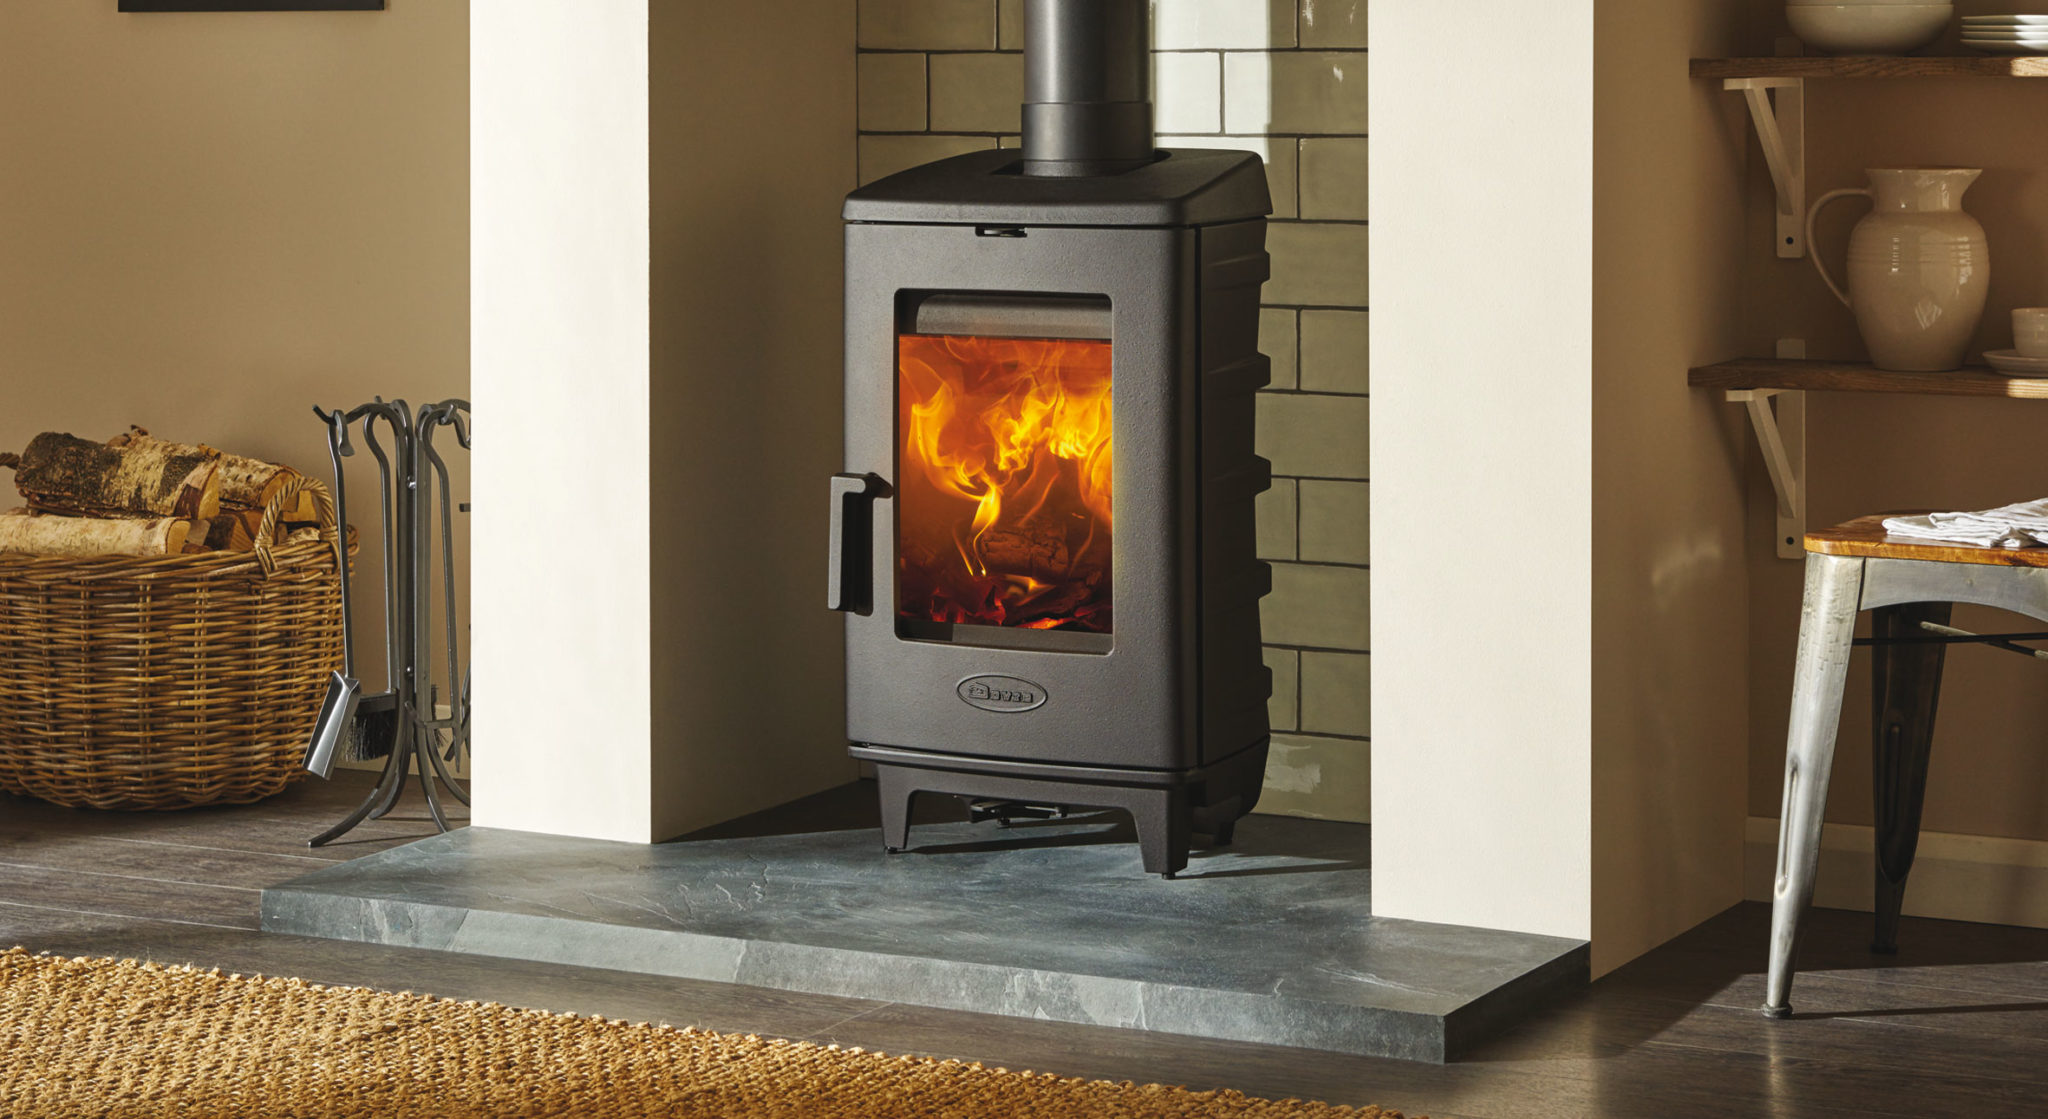 Brut – A Designer Wood Burning Stove With Advanced Heating Technology